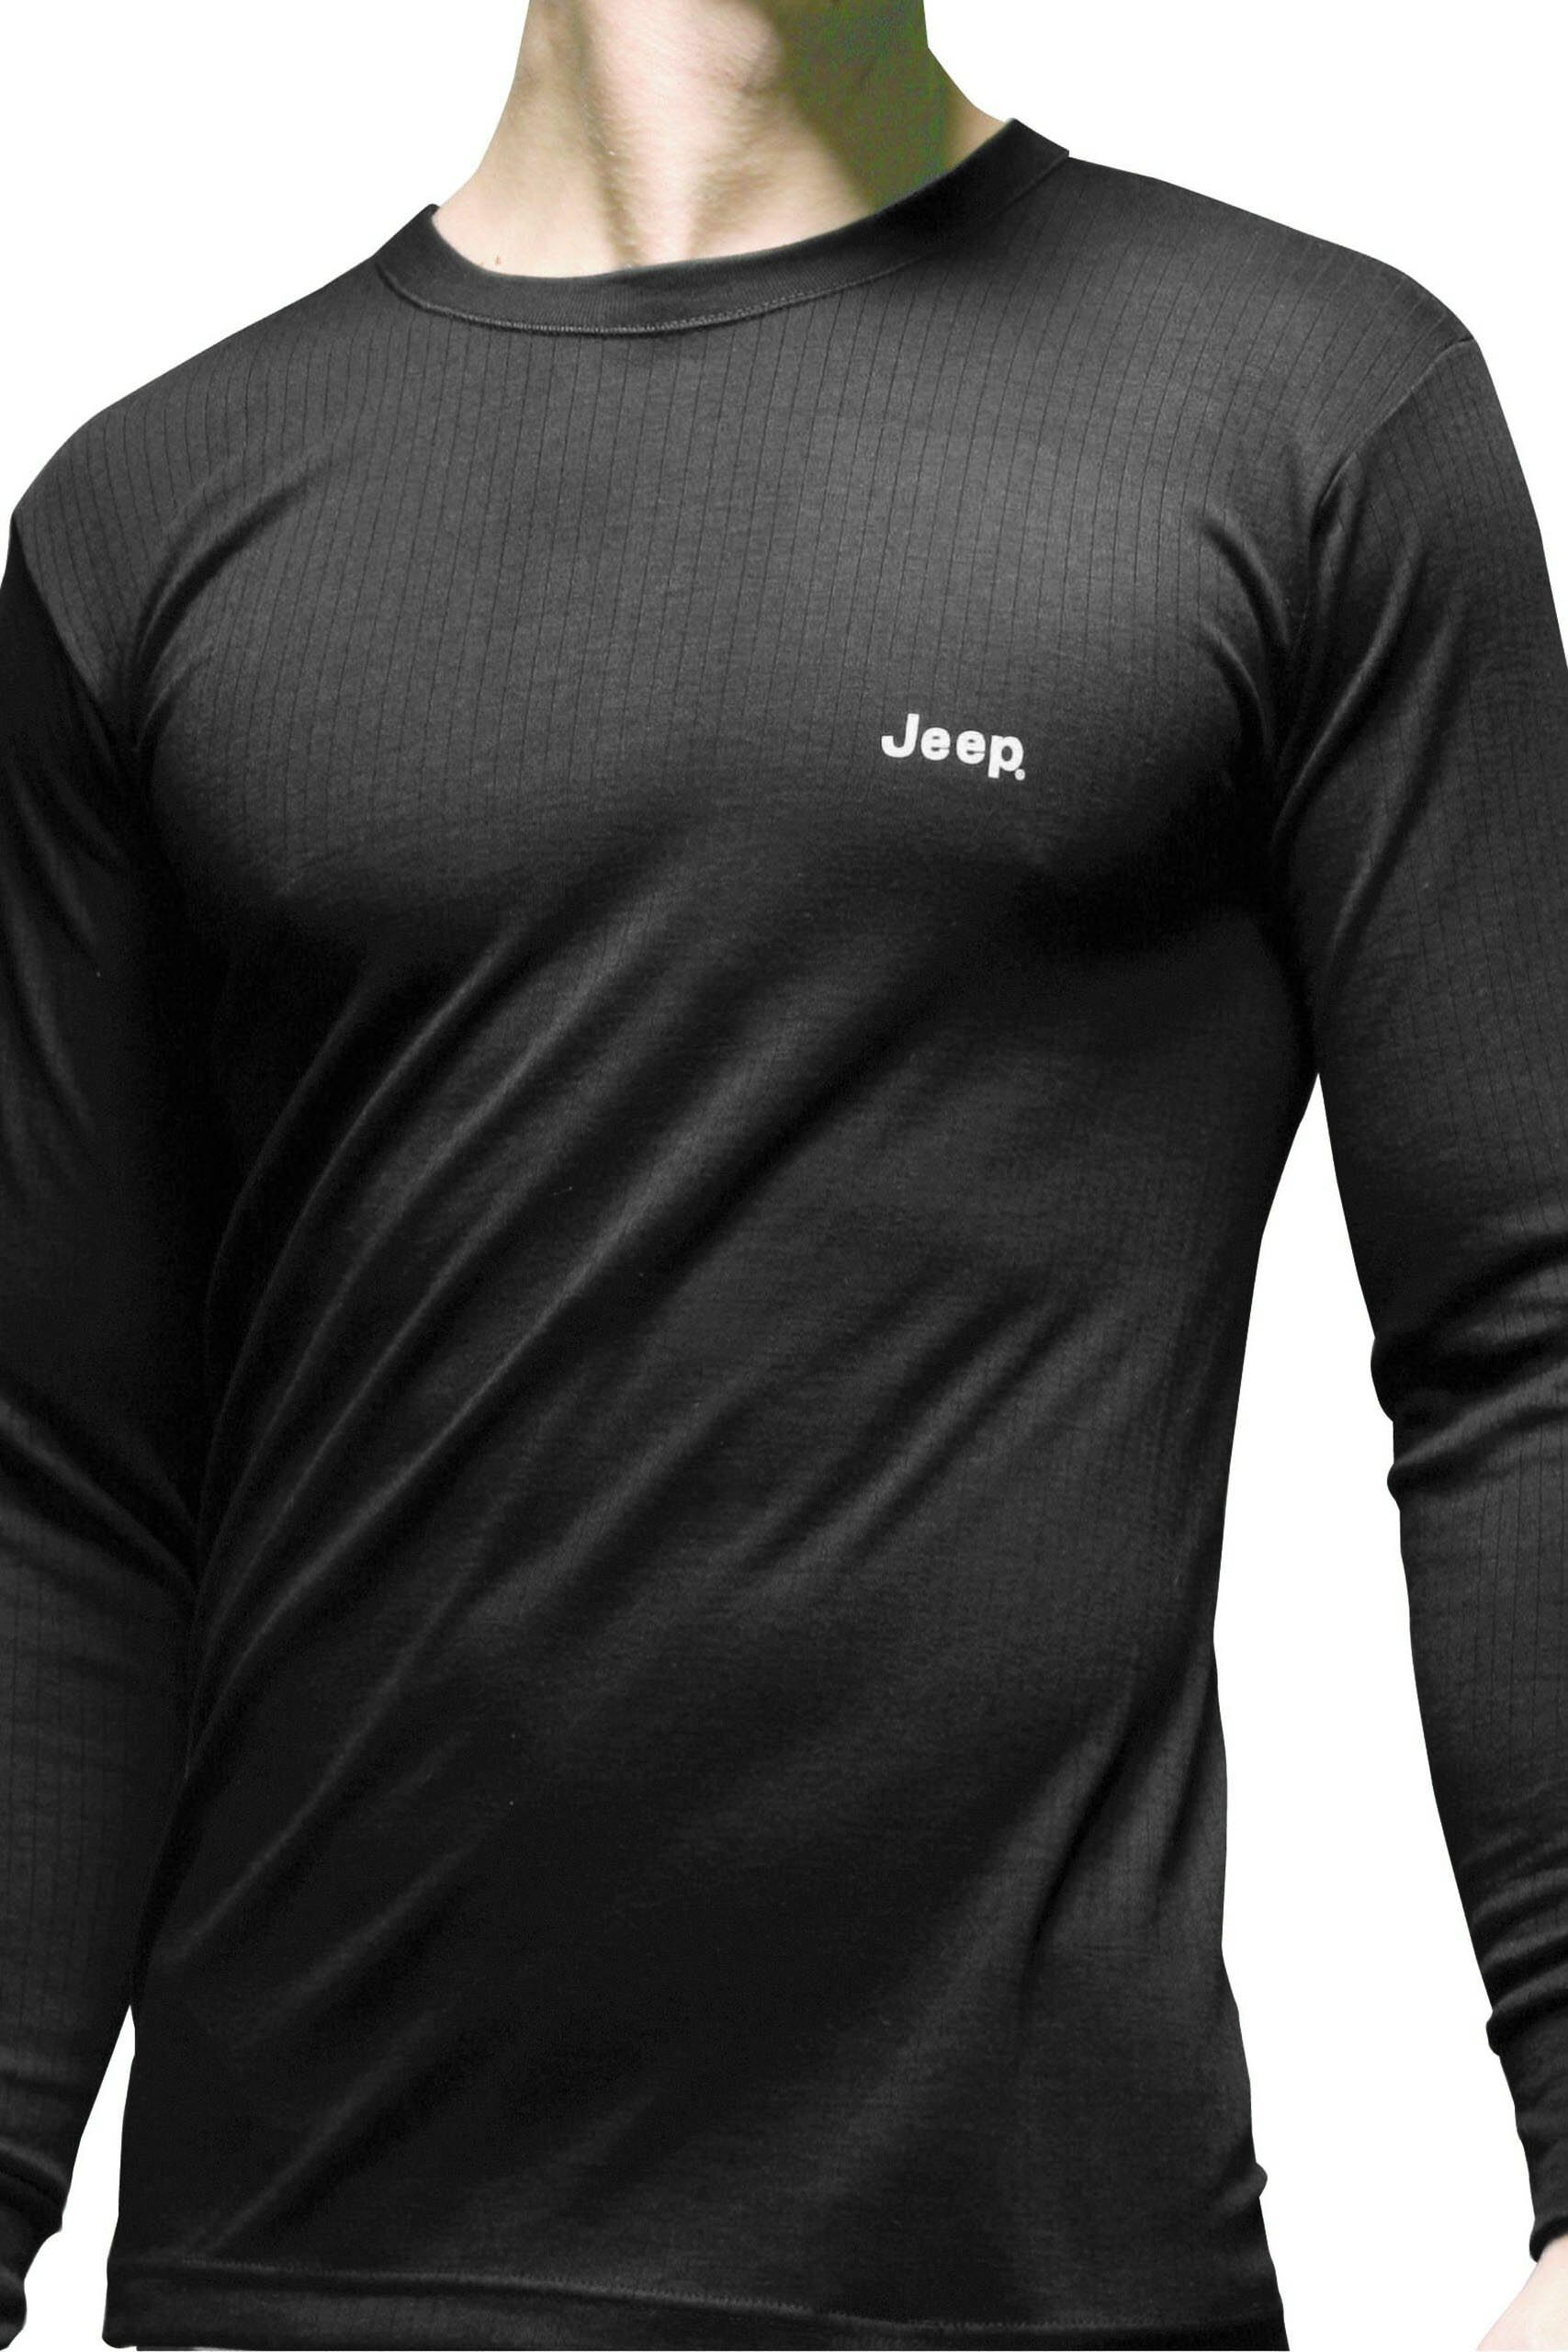 Image of 1 Pack Black Long Sleeved Thermal T-Shirt Men's Large - Jeep